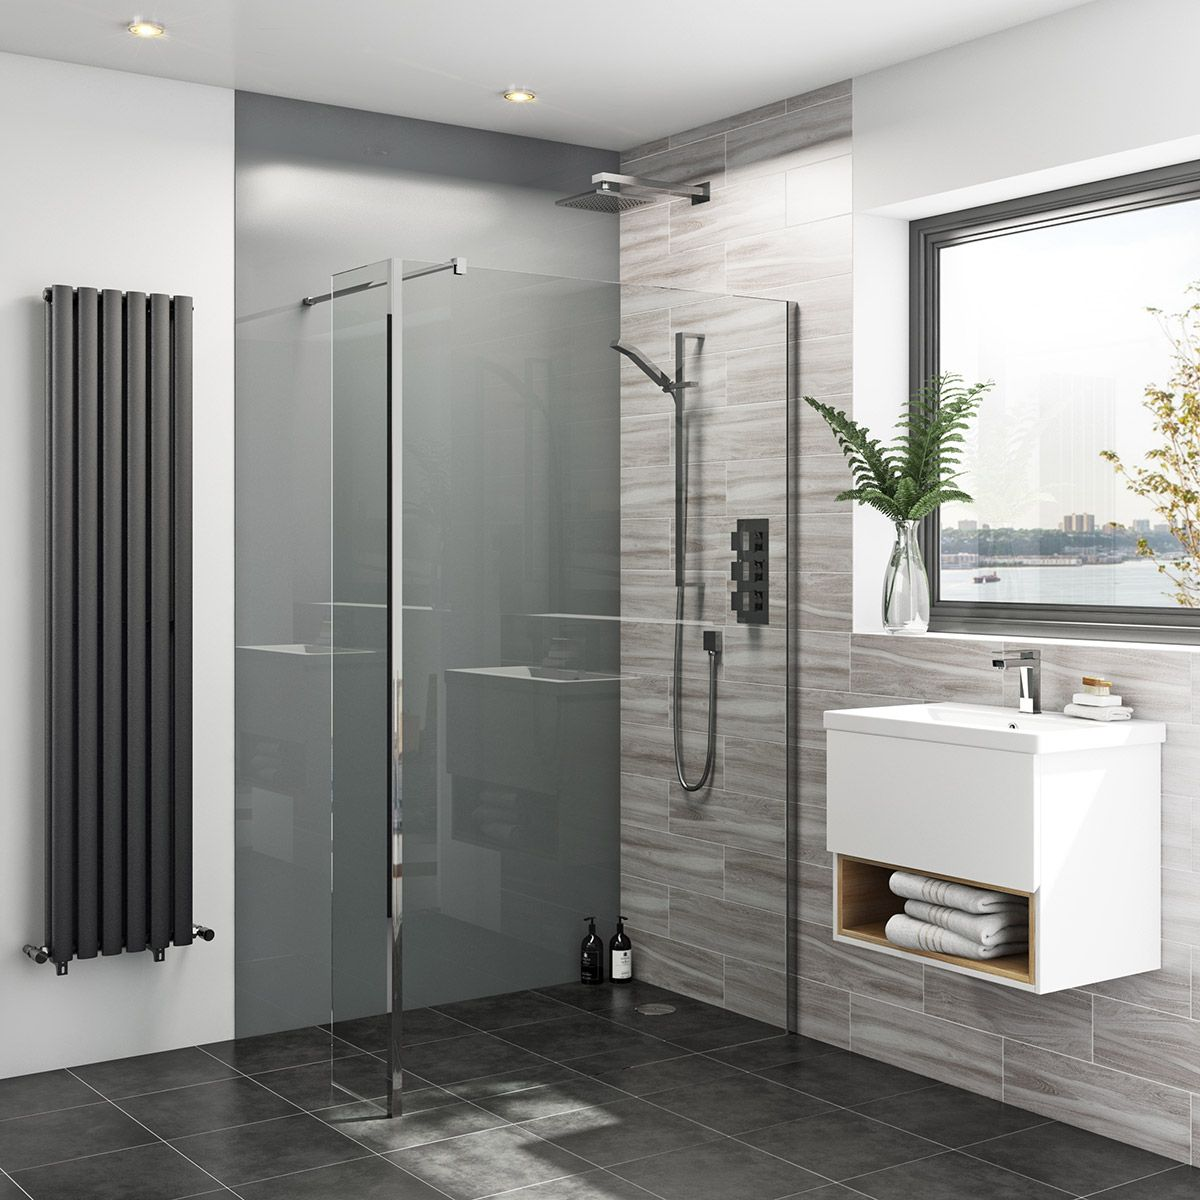 Zenolite plus ash acrylic shower wall panel 2440 x 1220 | Pinterest ...